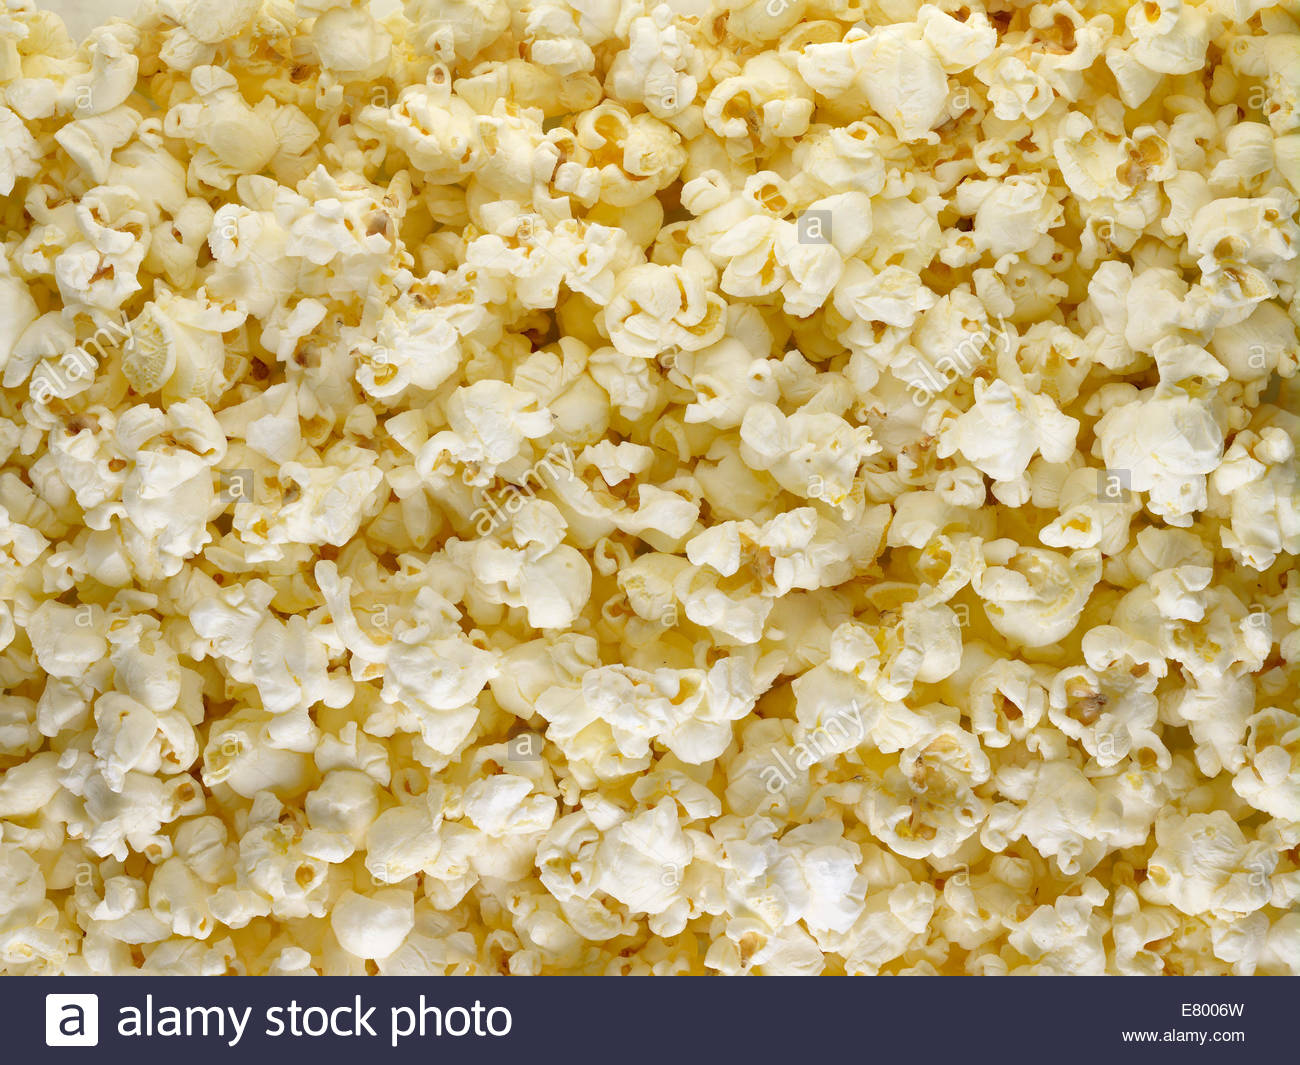 Popped corn or natural white popcorn snack shot as background. - Stock Image